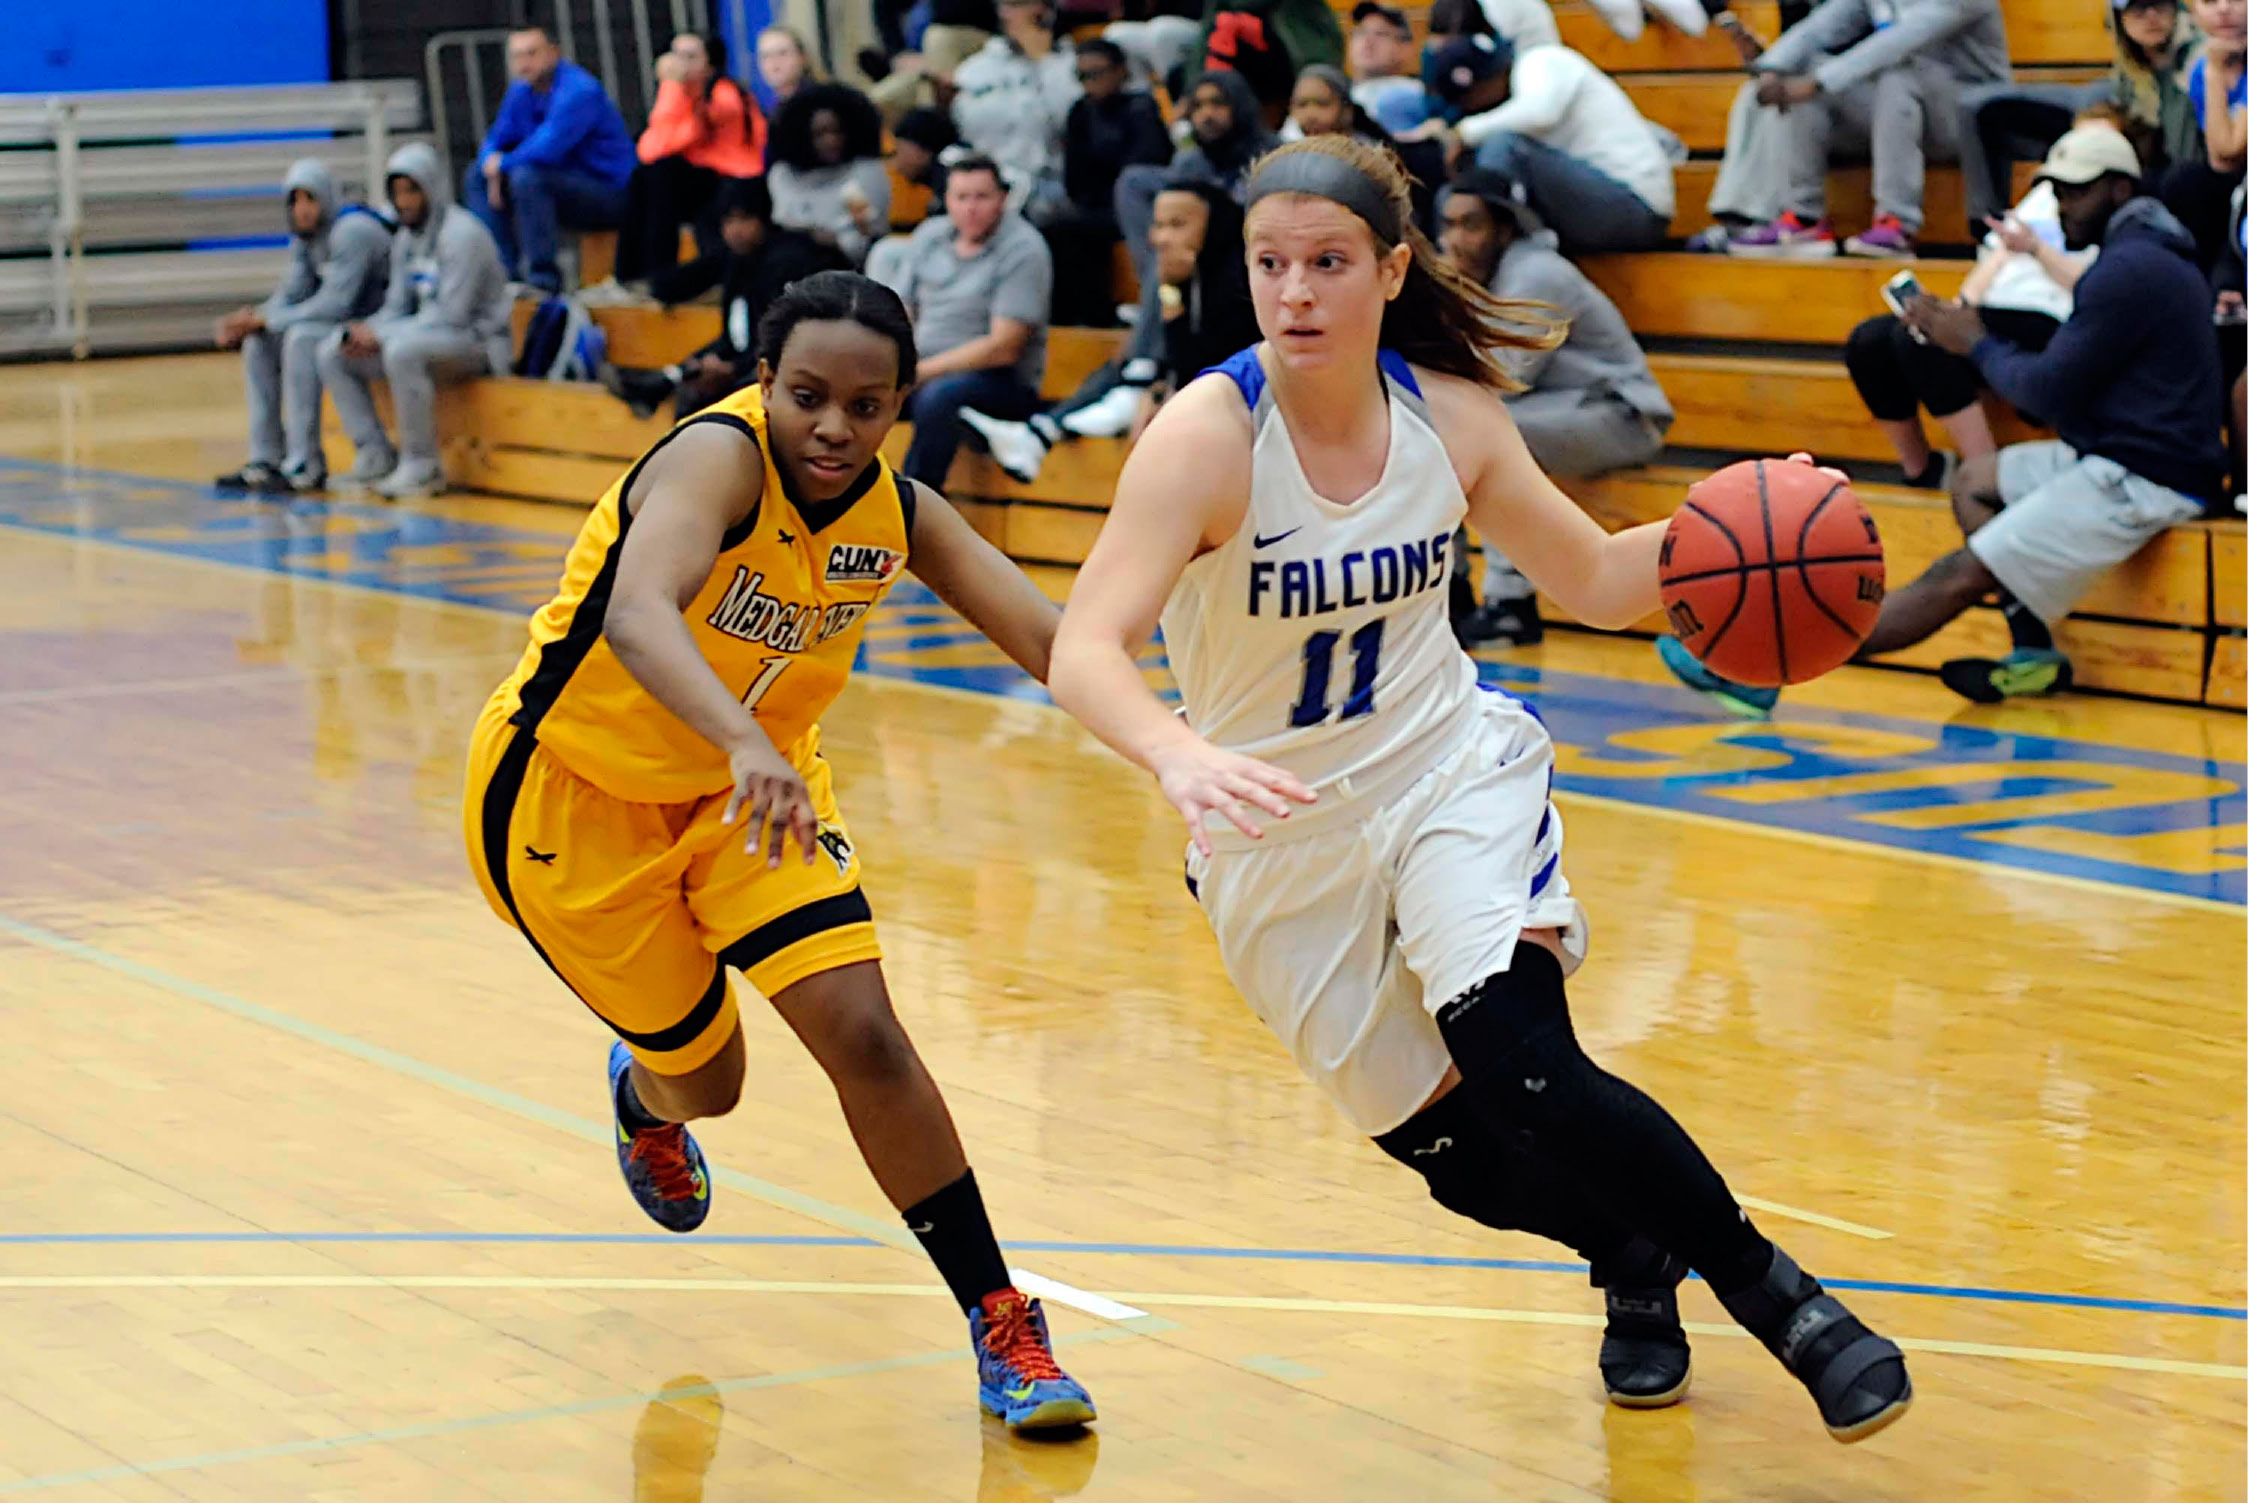 Liz Falcigno drives past a defender in a recent game against Medgar Evers. Falcigno, of Wallingford, had 21 points, 10 rebounds and seven assists in Albertus Magnus' record-setting 117-91 win over Pine Manor on Tuesday night. | Ron Waite, Photosportacular